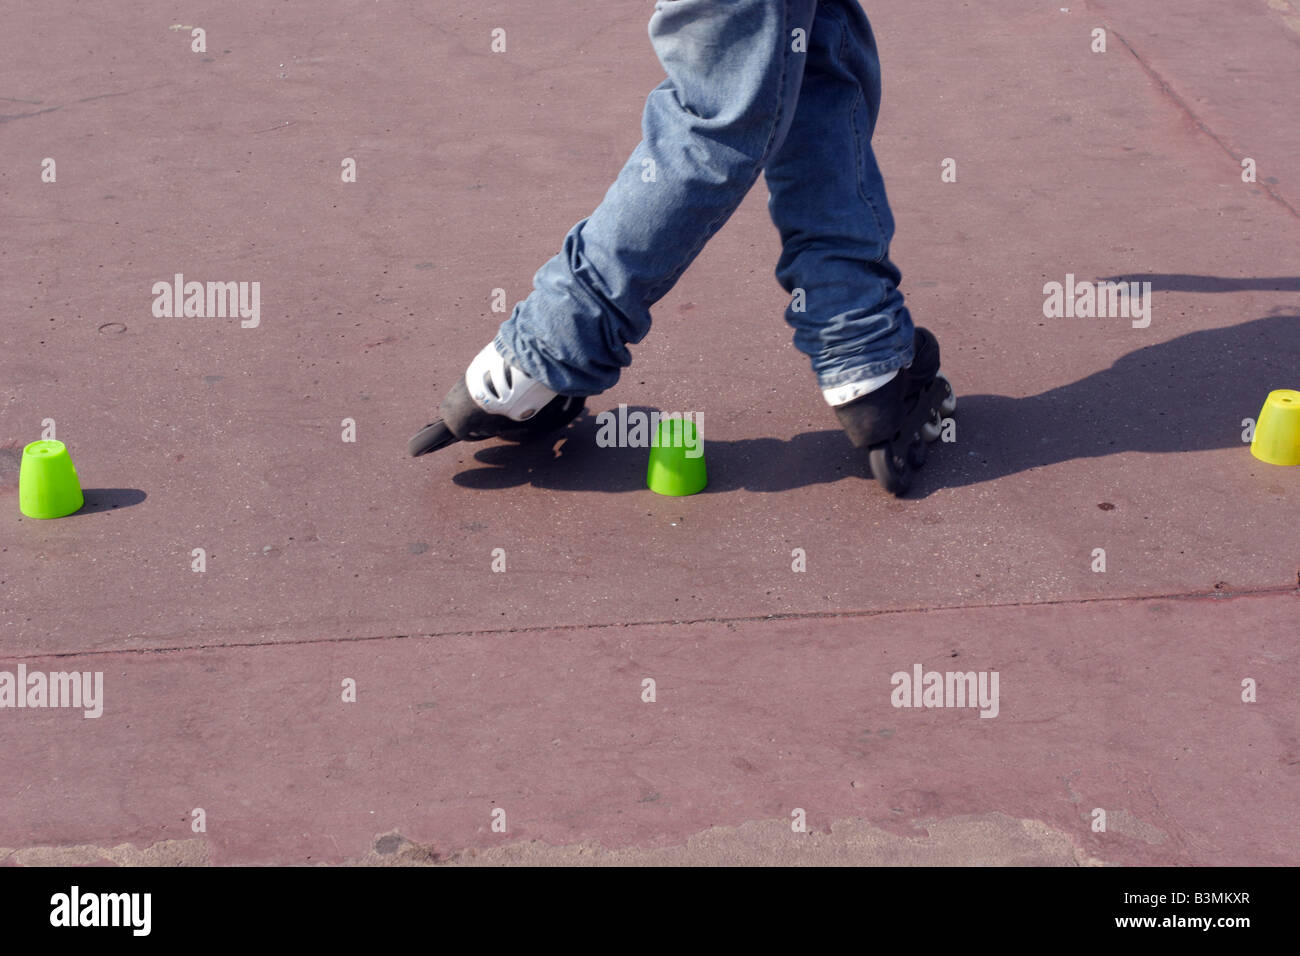 France Cote d Azur Nice Roller blader performing tricks on Promenade des Anglais in Nice Stock Photo